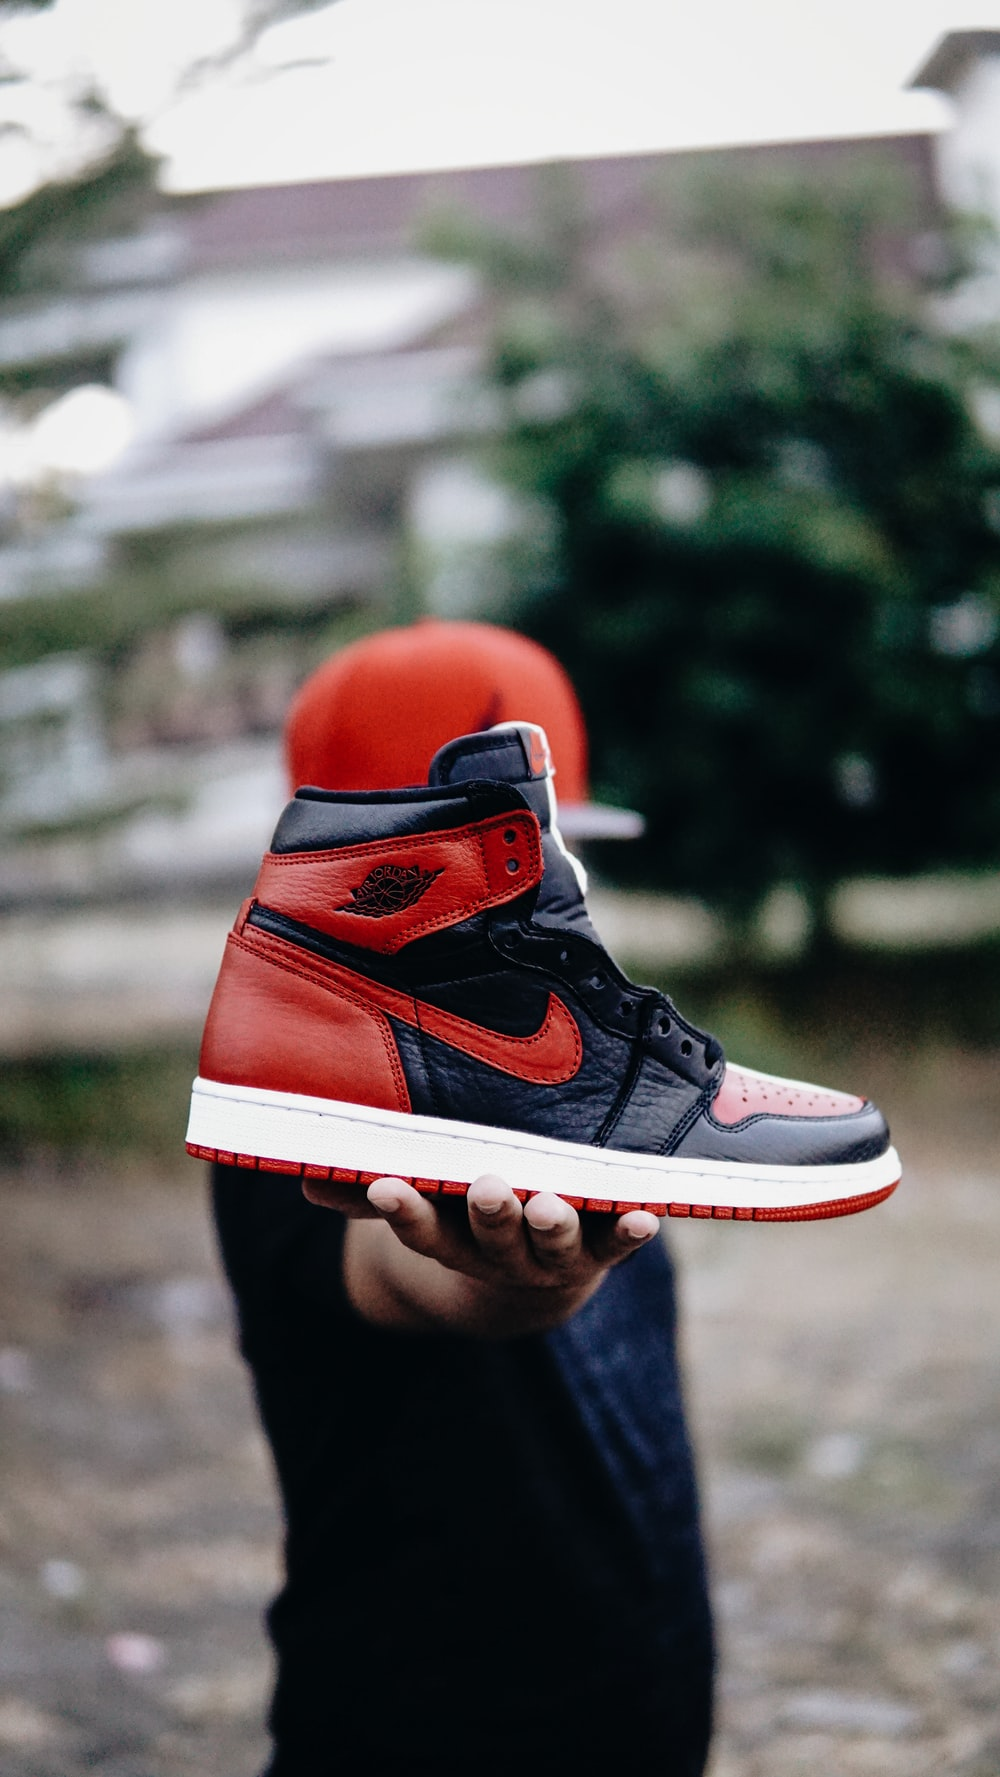 selective focus photo of person holding unpaired black and red Nike Air  Jordan 1 shoe 87f25090f